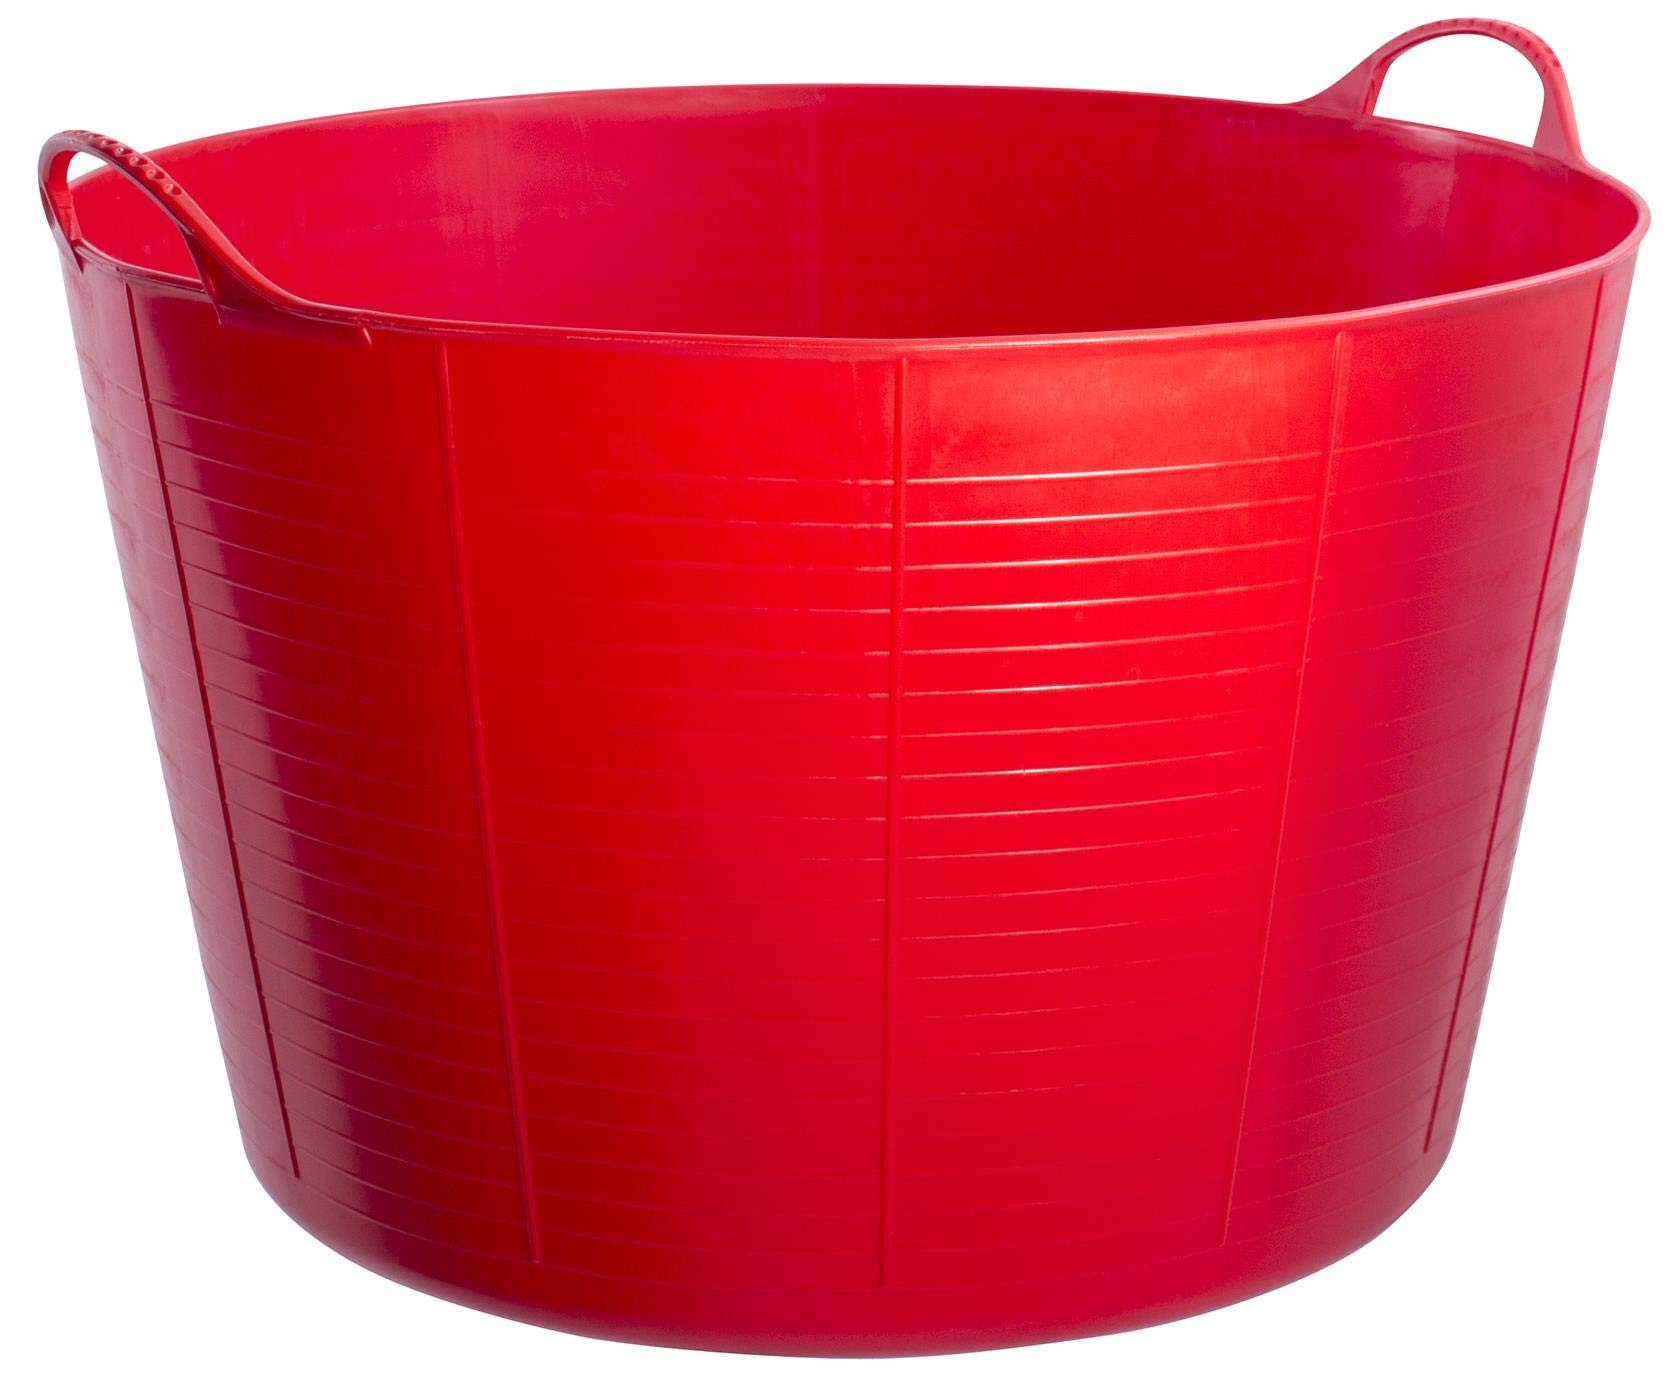 TubTrugs SP75R X-Large Red Flex Tub,75 Liter by Tubtrugs